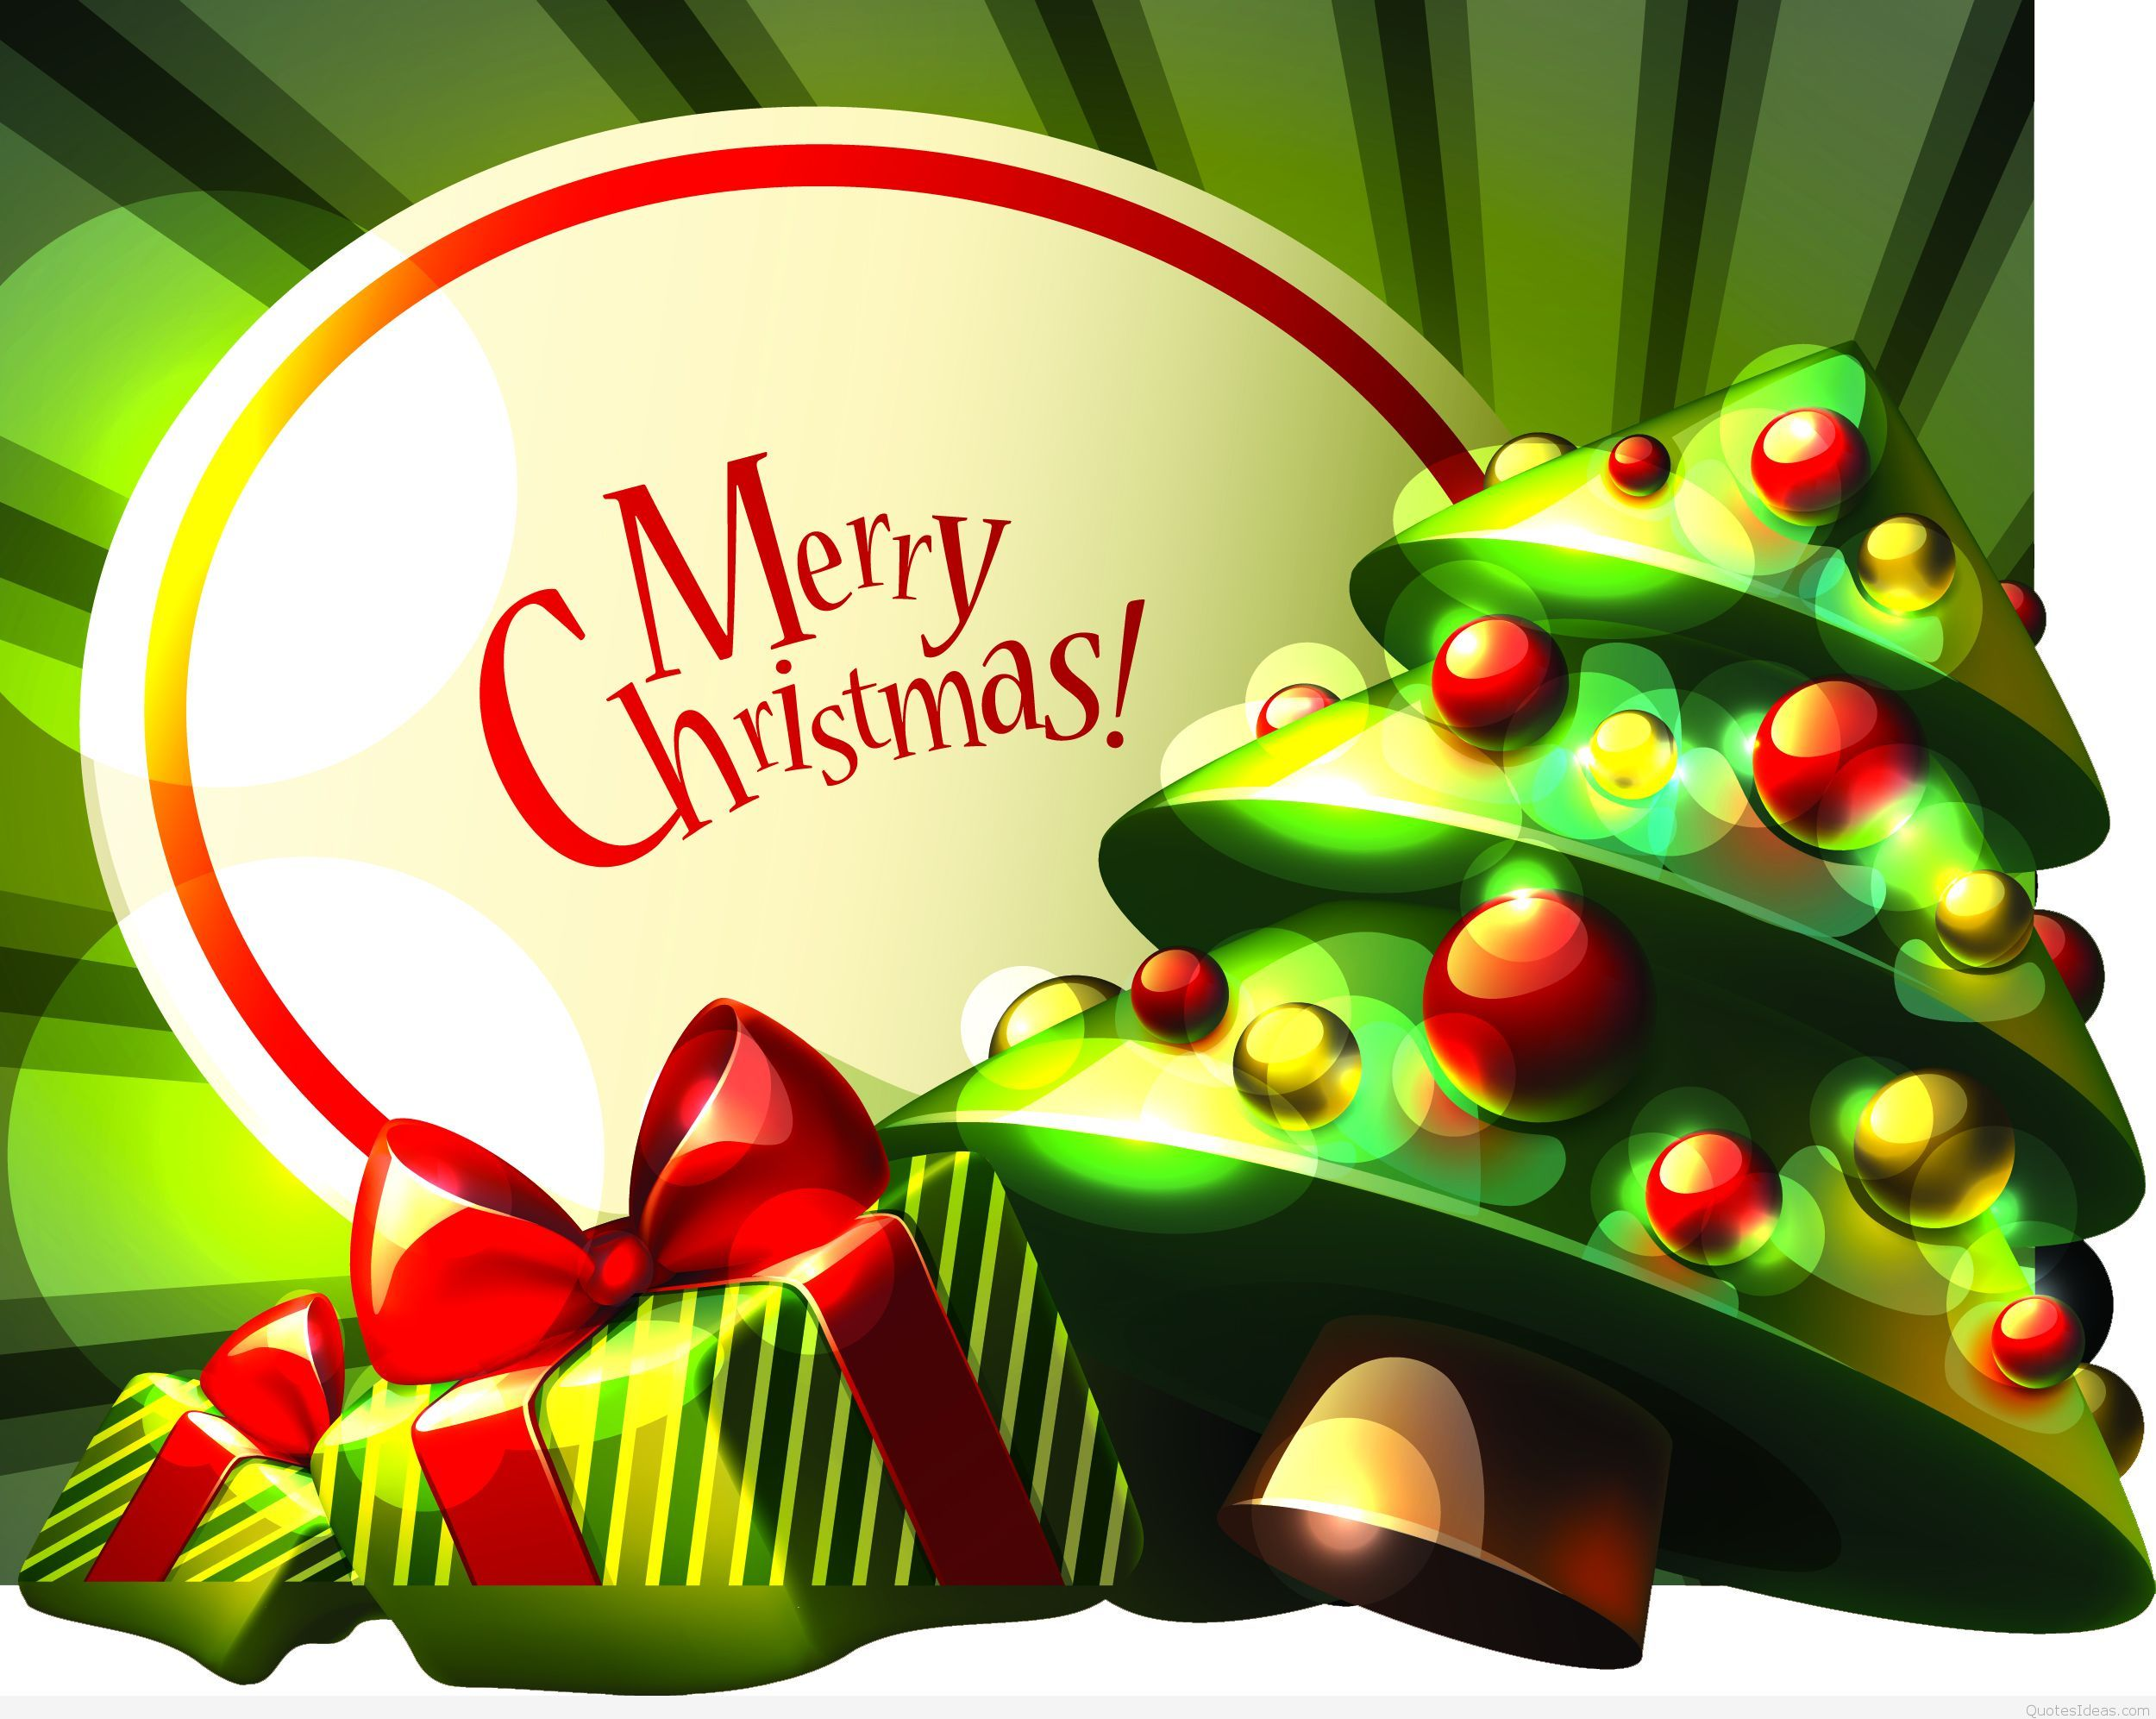 Merry christmas new wallpapers merry christmas new images pack v